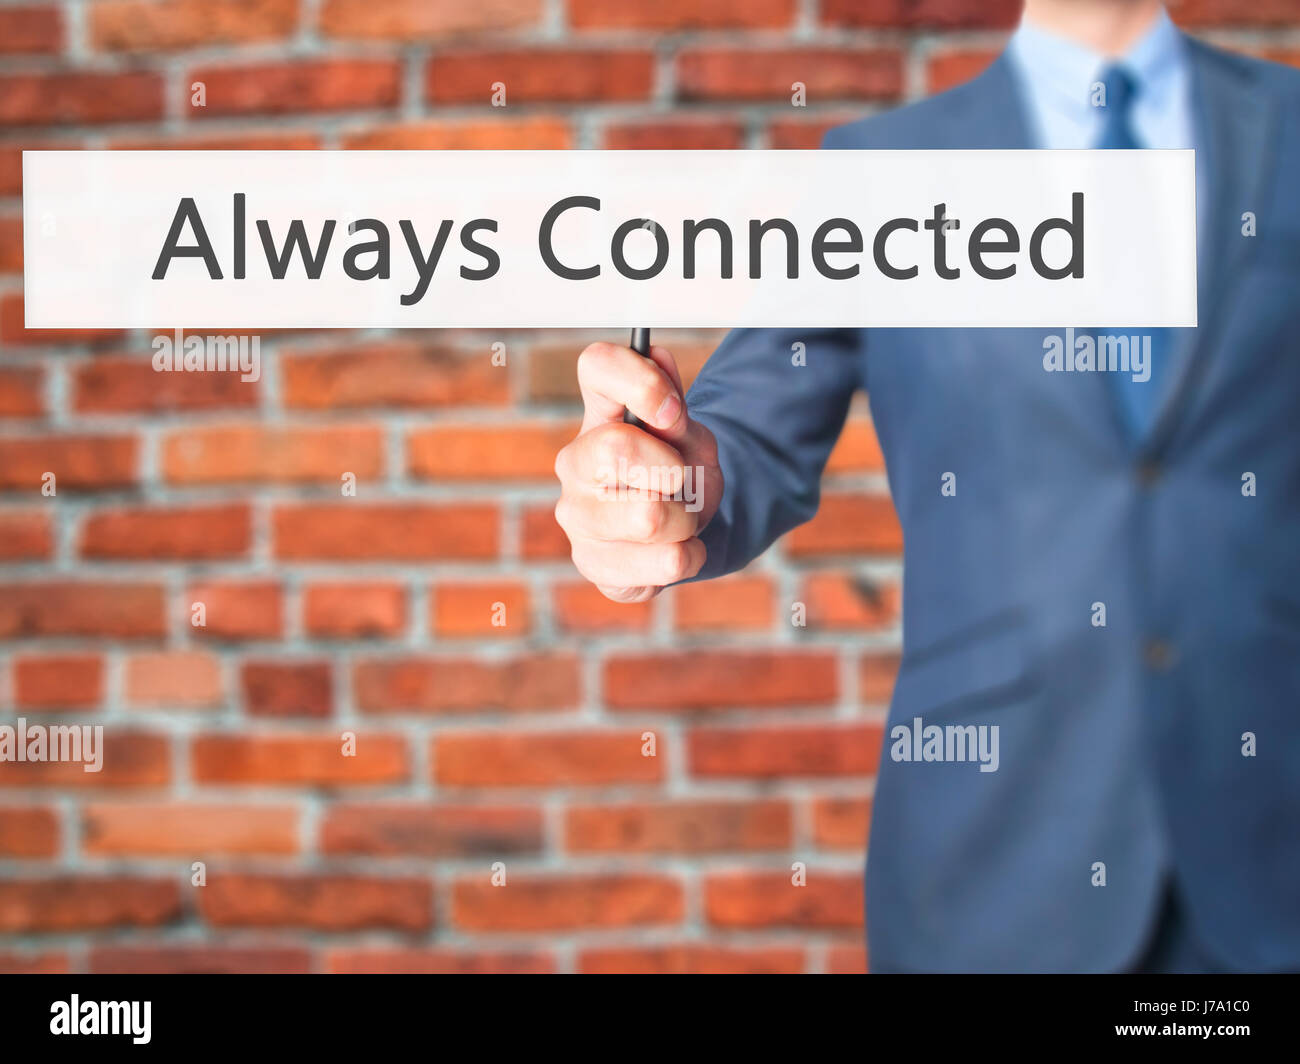 Always Connected - Businessman hand holding sign. Business, technology, internet concept. Stock Photo Stock Photo